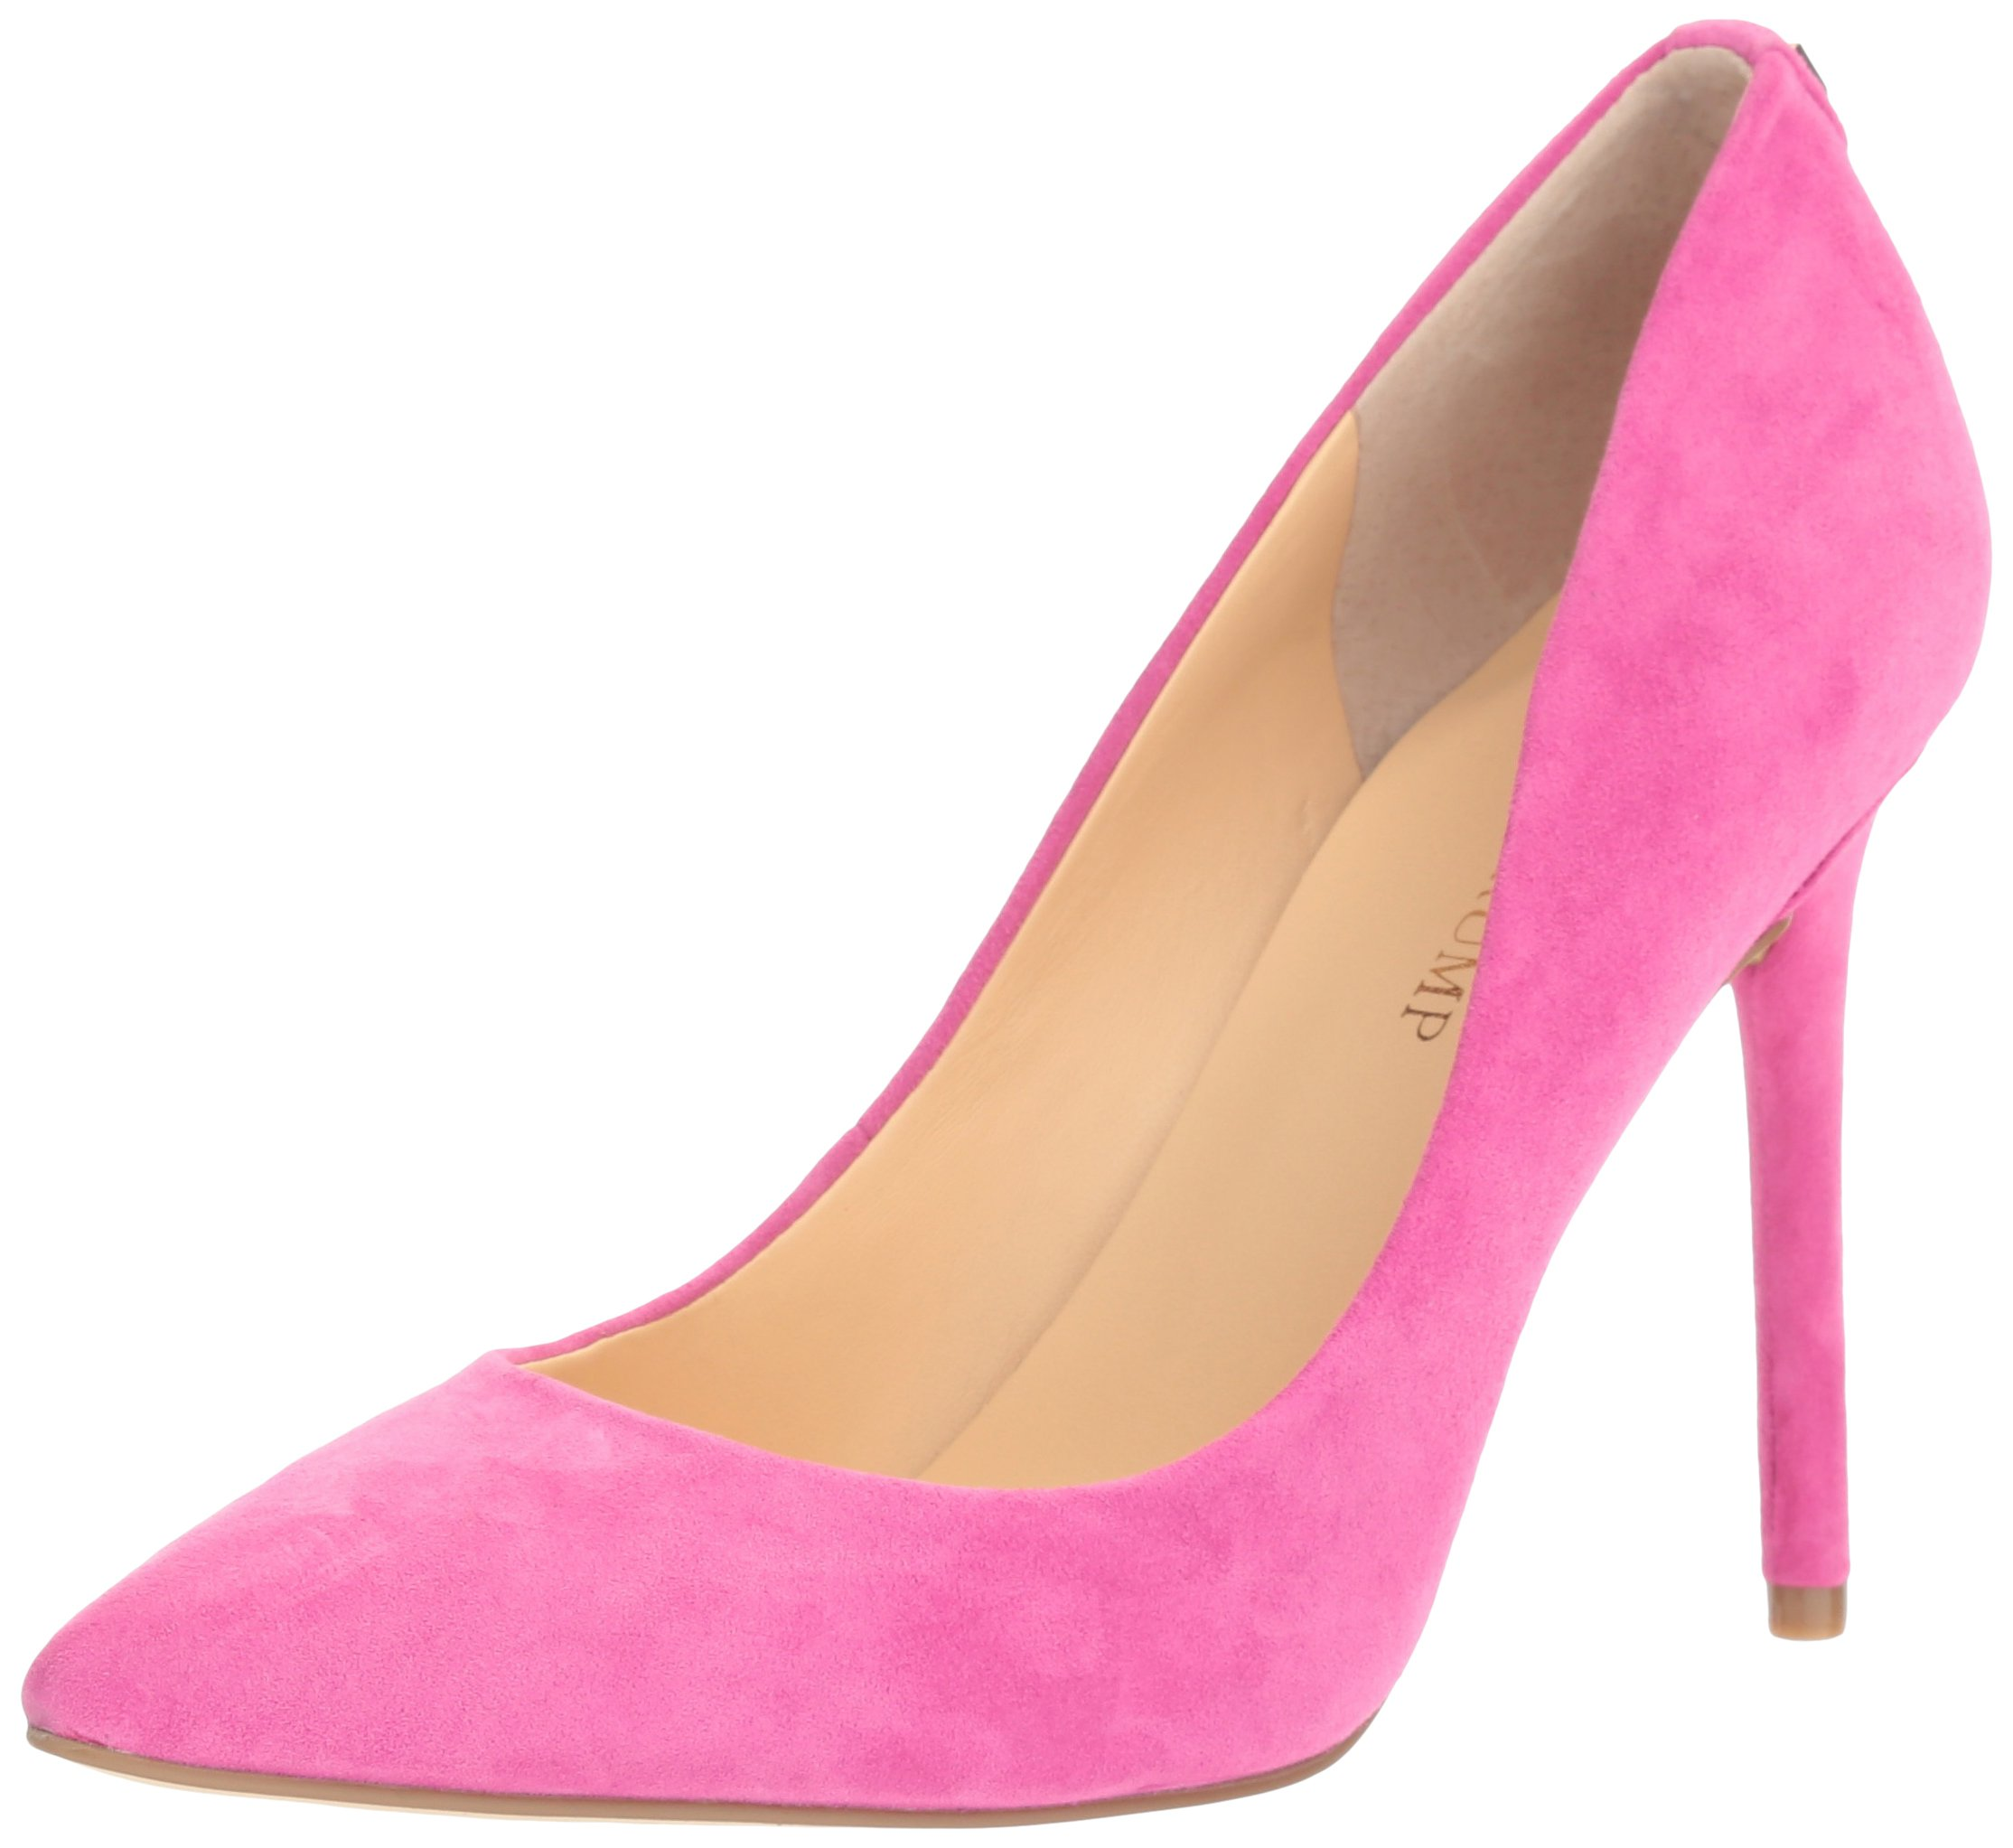 Ivanka Trump Women's Kayden4 Dress Pump, Pink, 8.5 M US